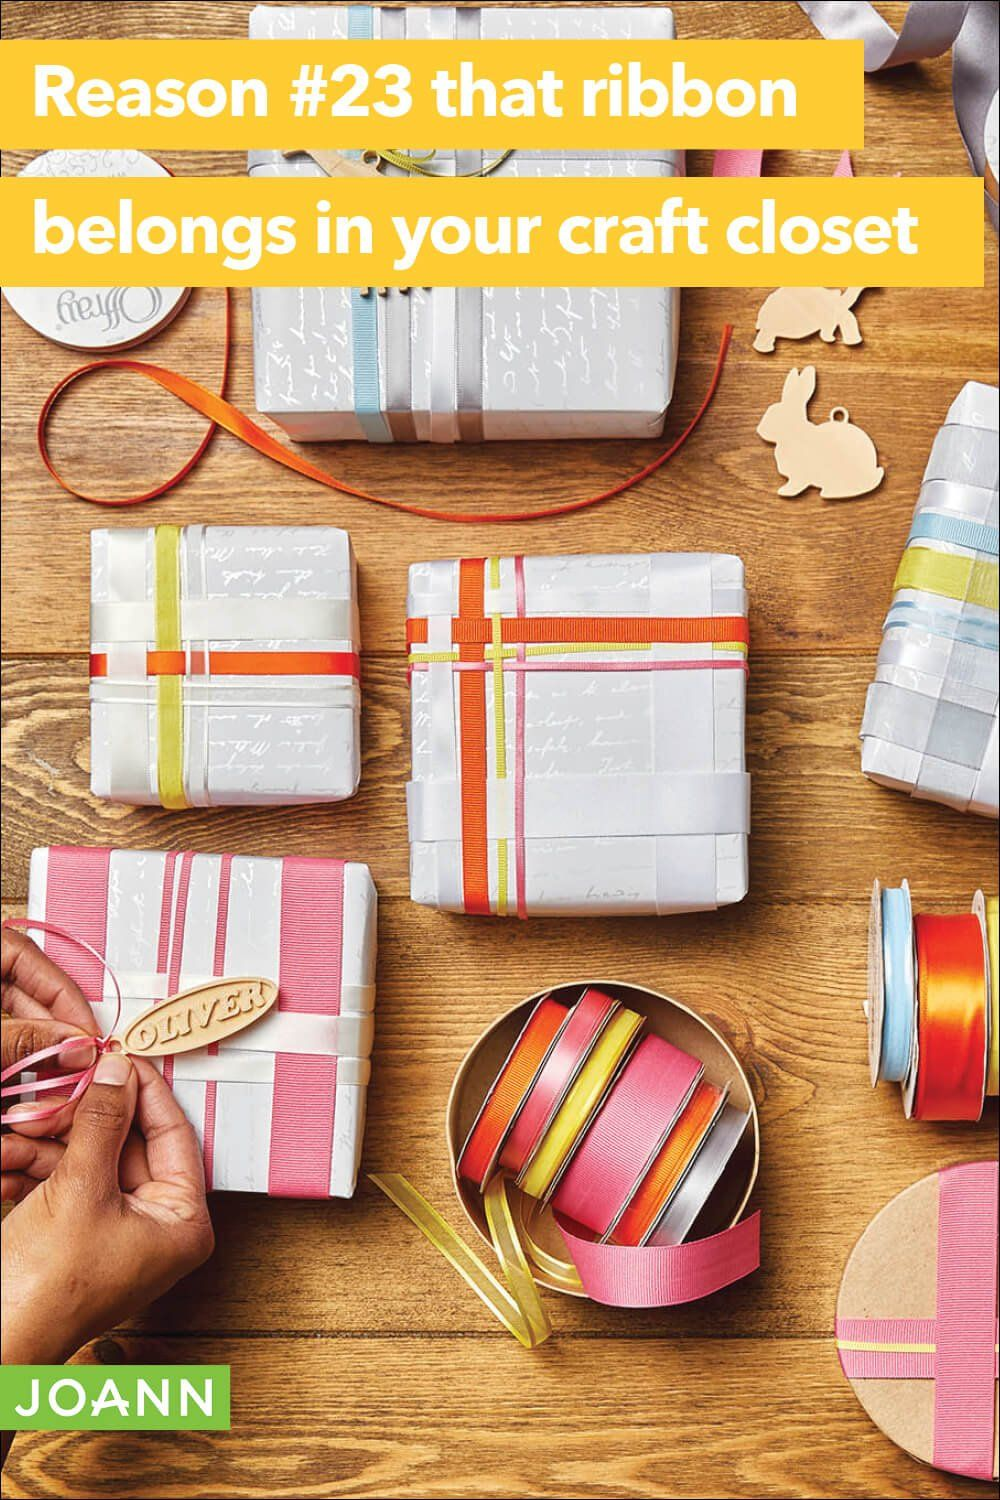 Shop Ribbon To Make Pretty Packages And So Much More In 2020 Ribbon Design Printed Ribbon Crafts